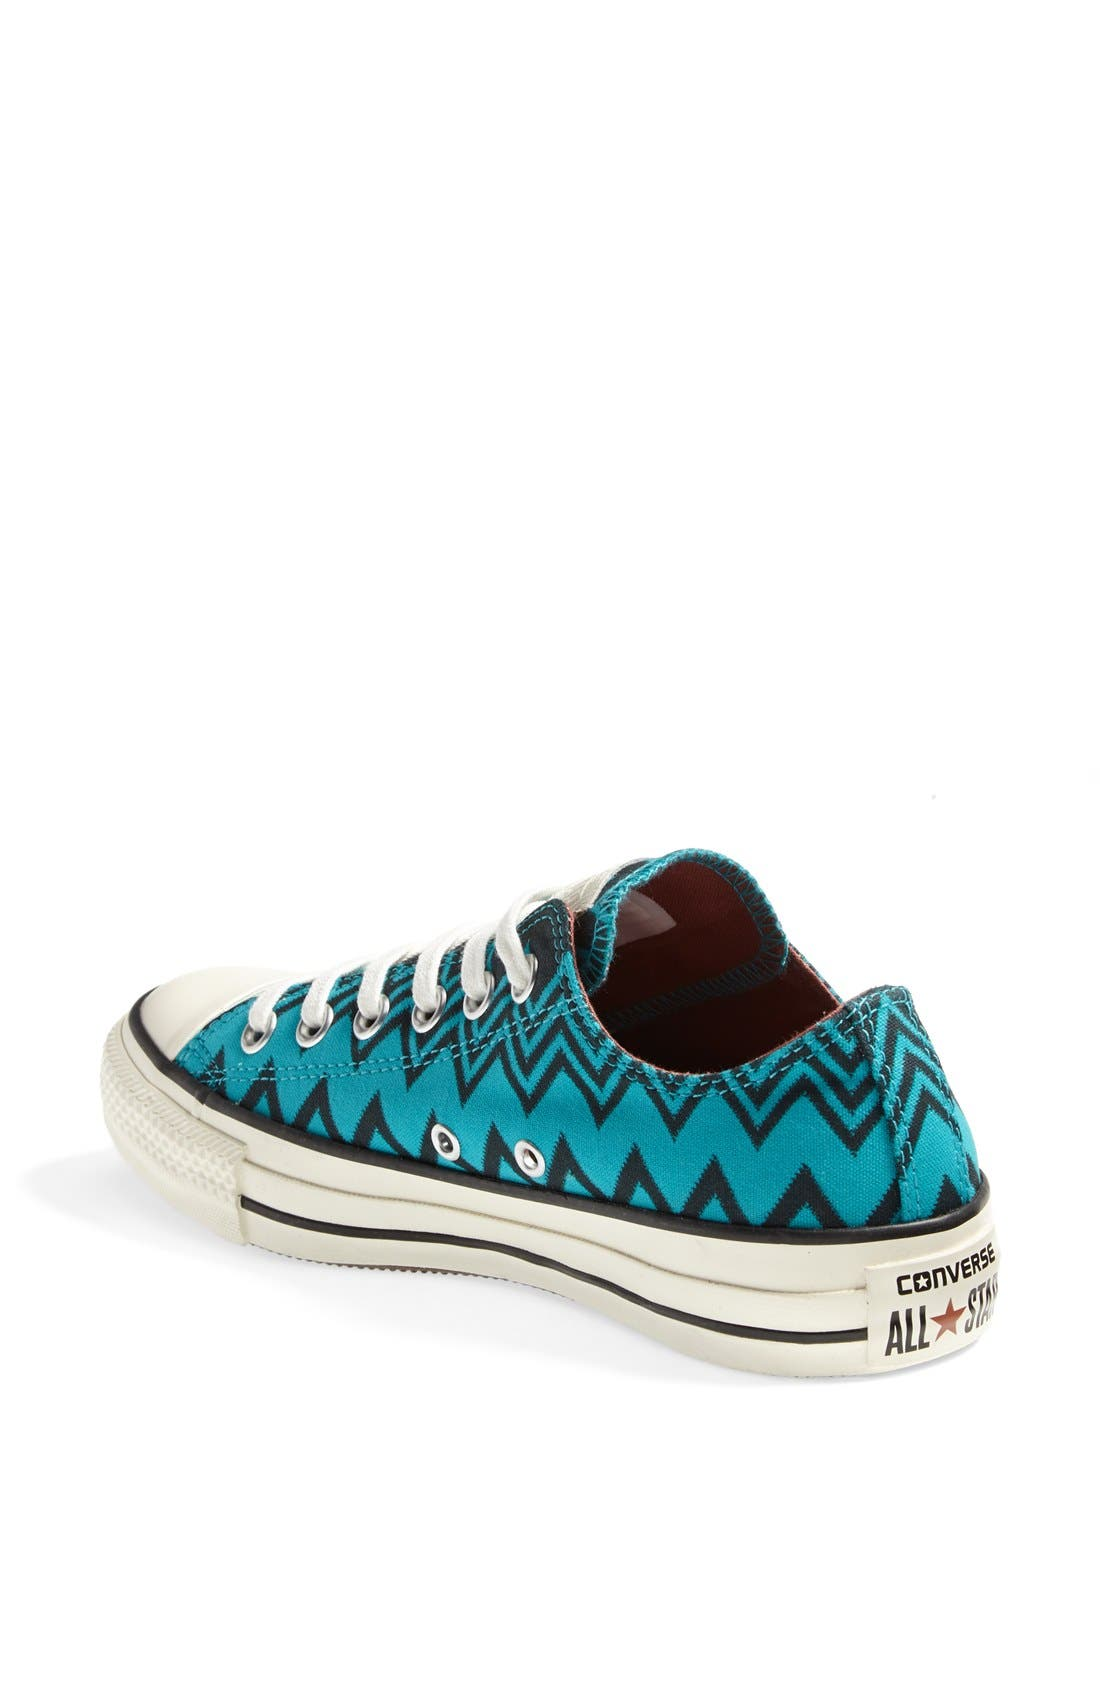 ,                             x Missoni Chuck Taylor<sup>®</sup> All Star<sup>®</sup> Low Sneaker,                             Alternate thumbnail 9, color,                             446